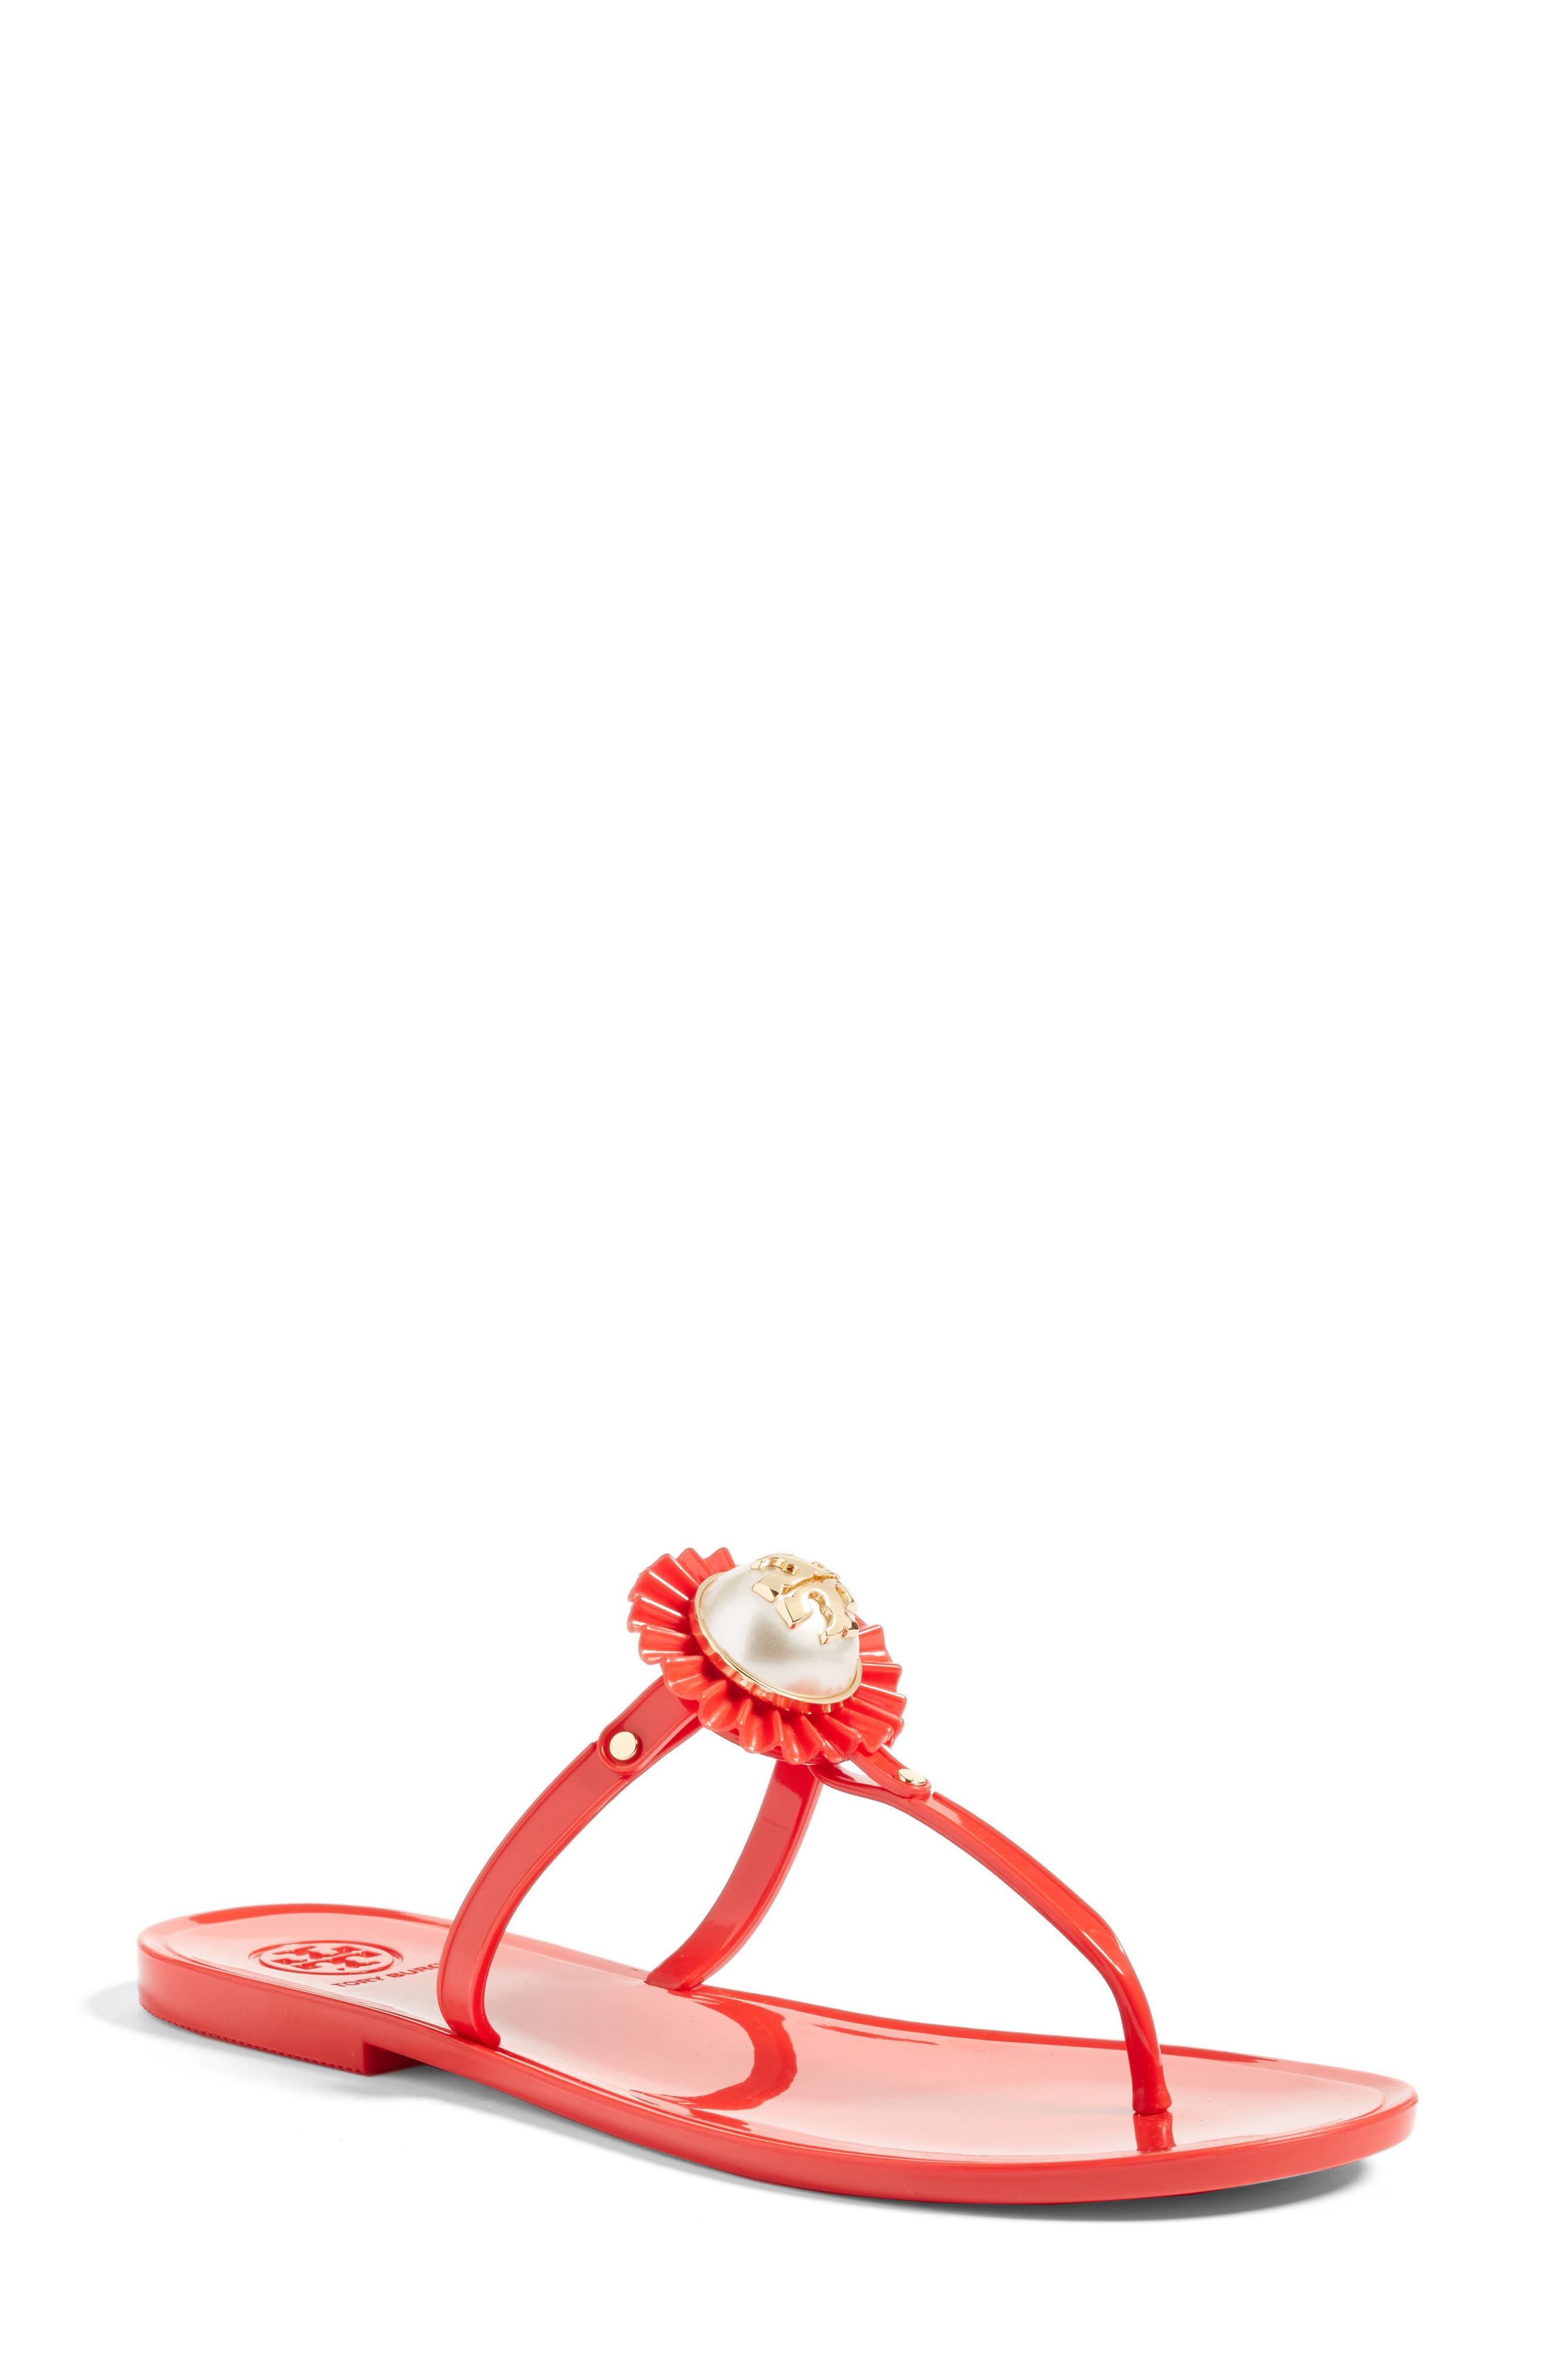 TORY BURCH Melody Sandal